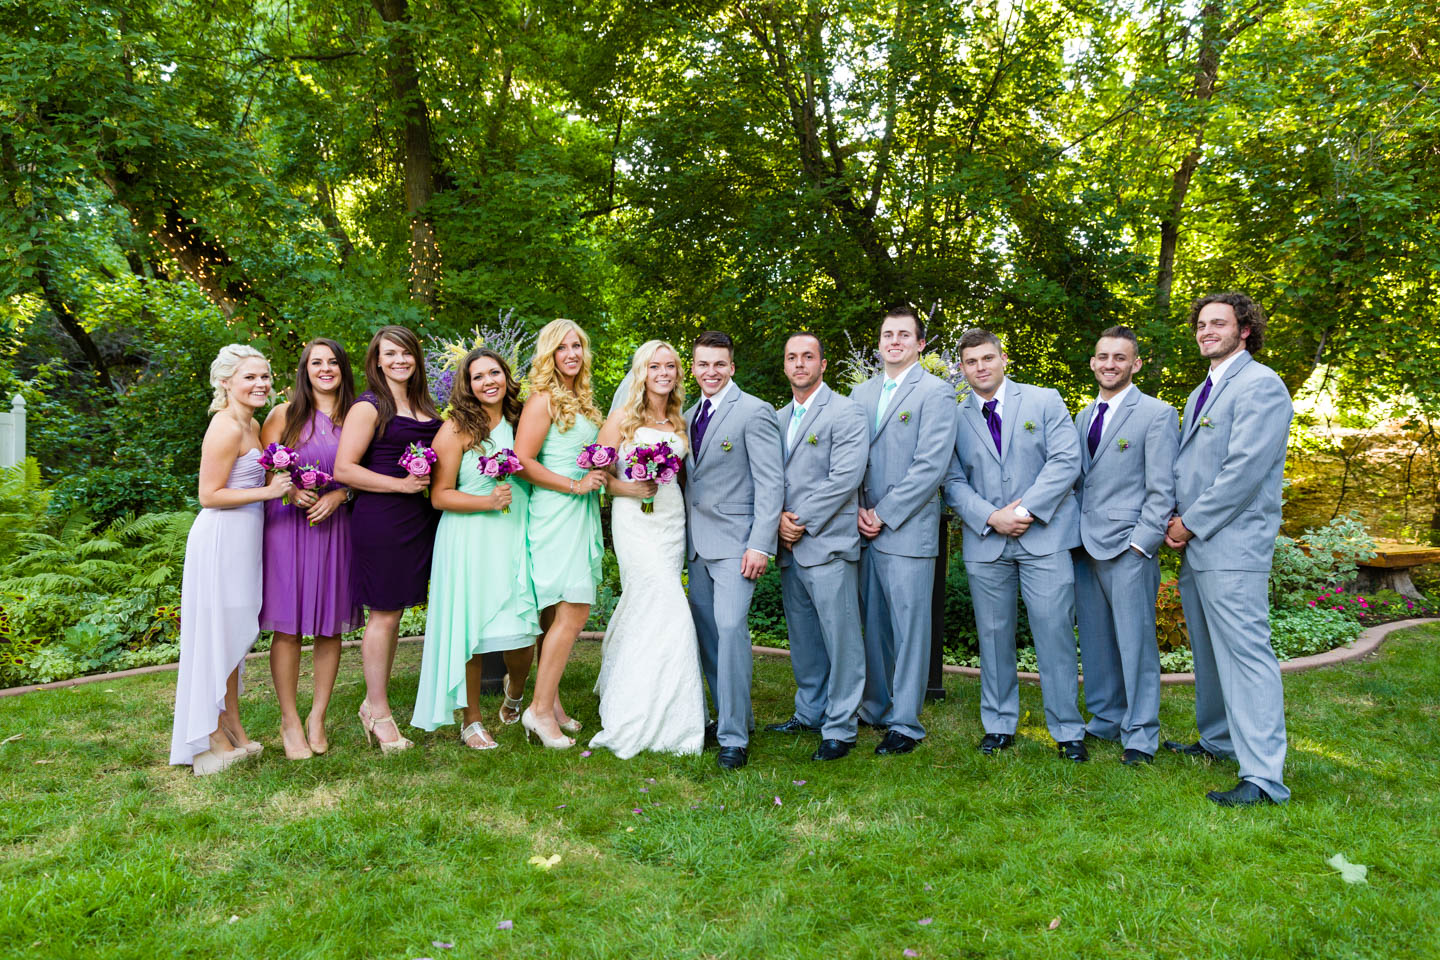 A Backyard Wedding in Kaysville for C.J. and Red | dav.d ...